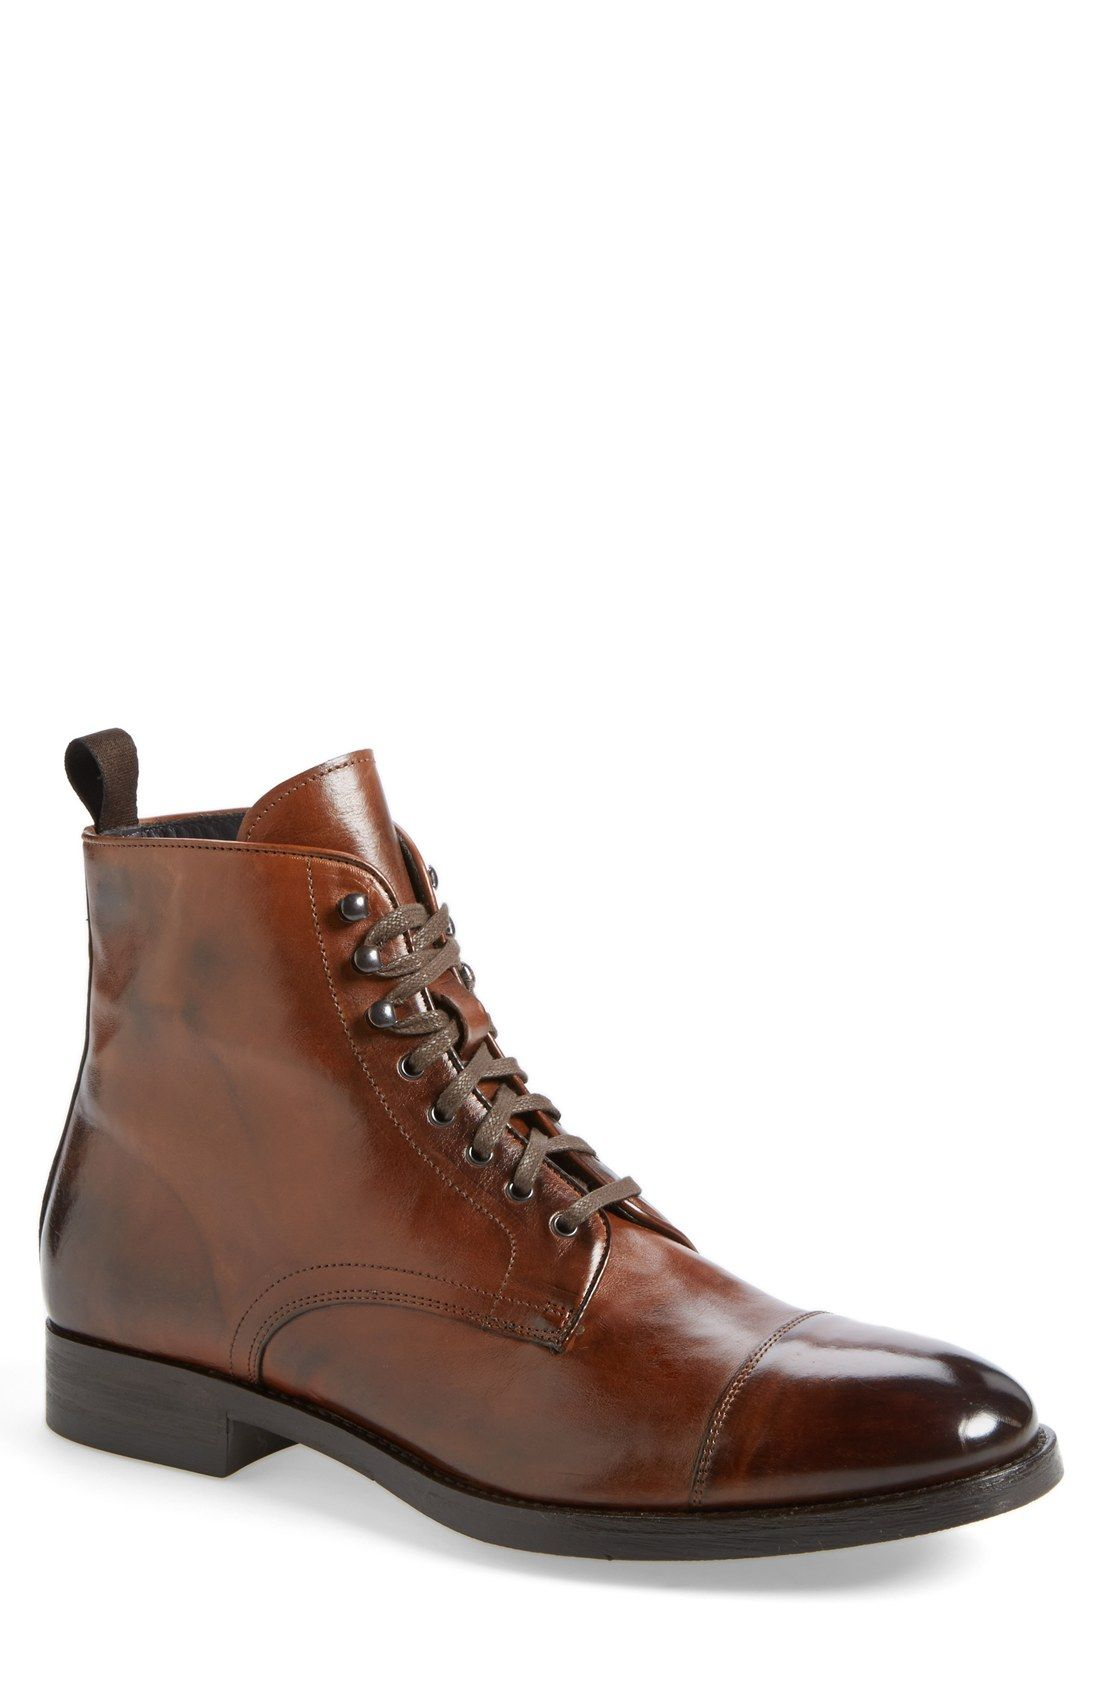 Stylish cognac boots for fall.  8c108882067